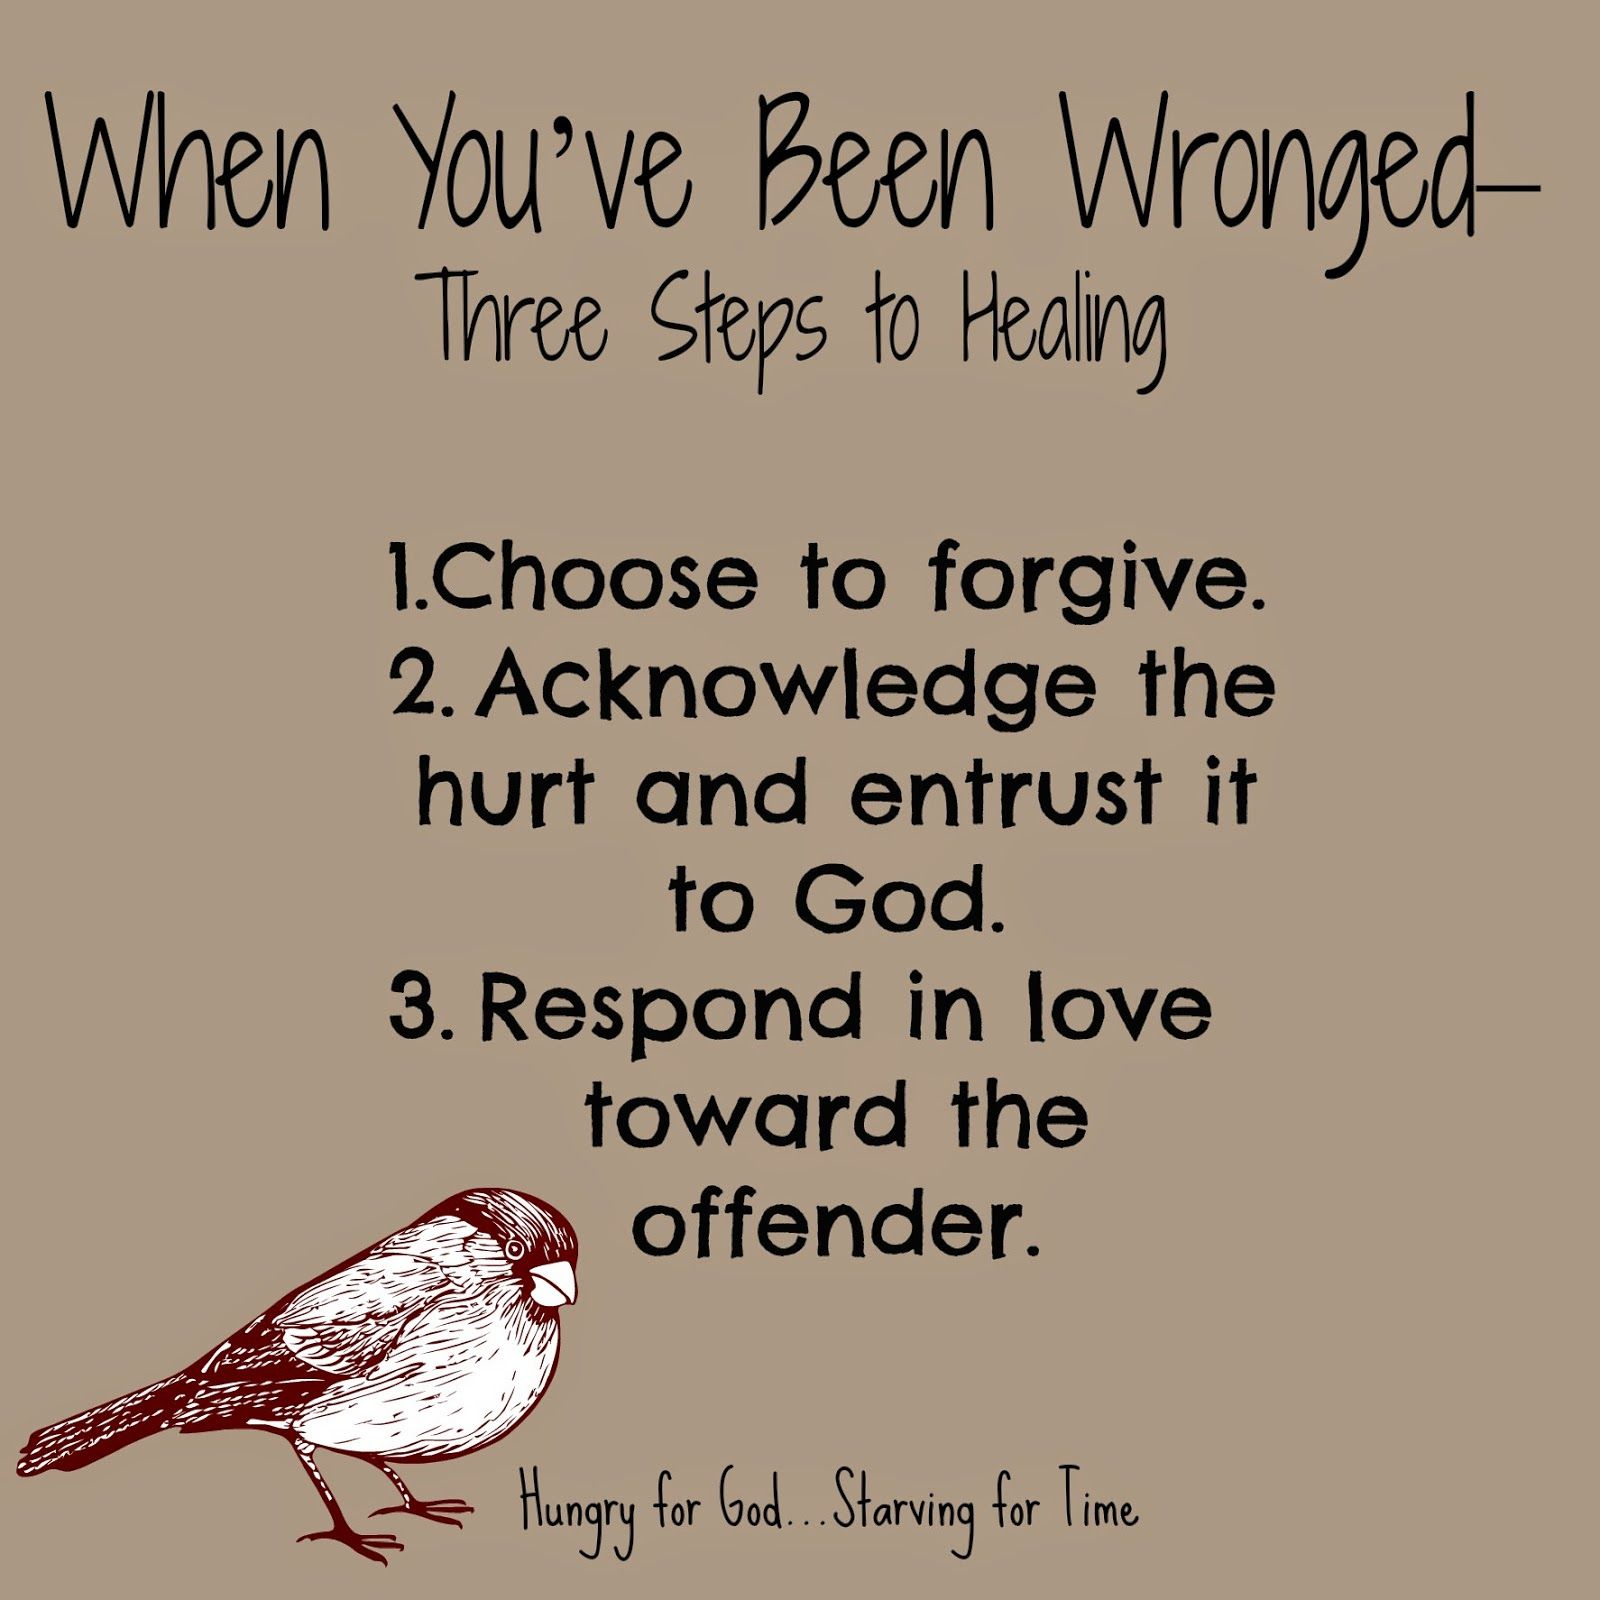 When Weu0027ve Been Hurt, Sometimes Weu0027re Able To Extend Forgiveness Because